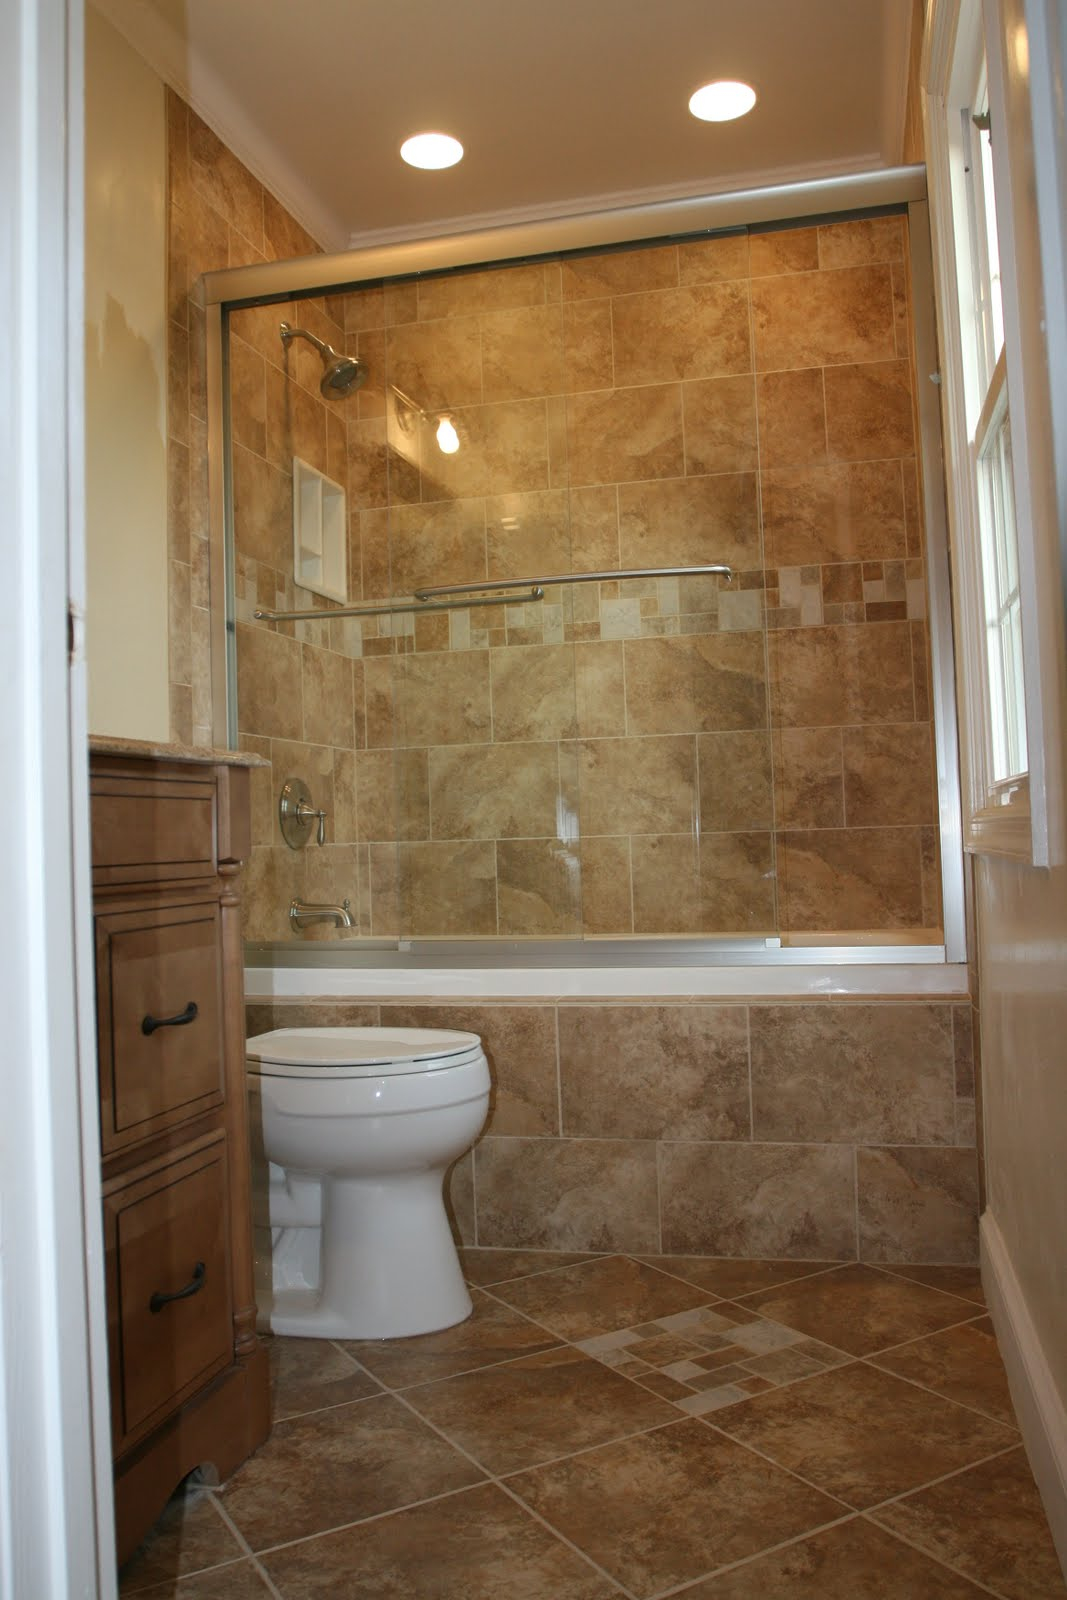 Bathroom remodeling design ideas tile shower niches for Bathroom renovation designs ideas